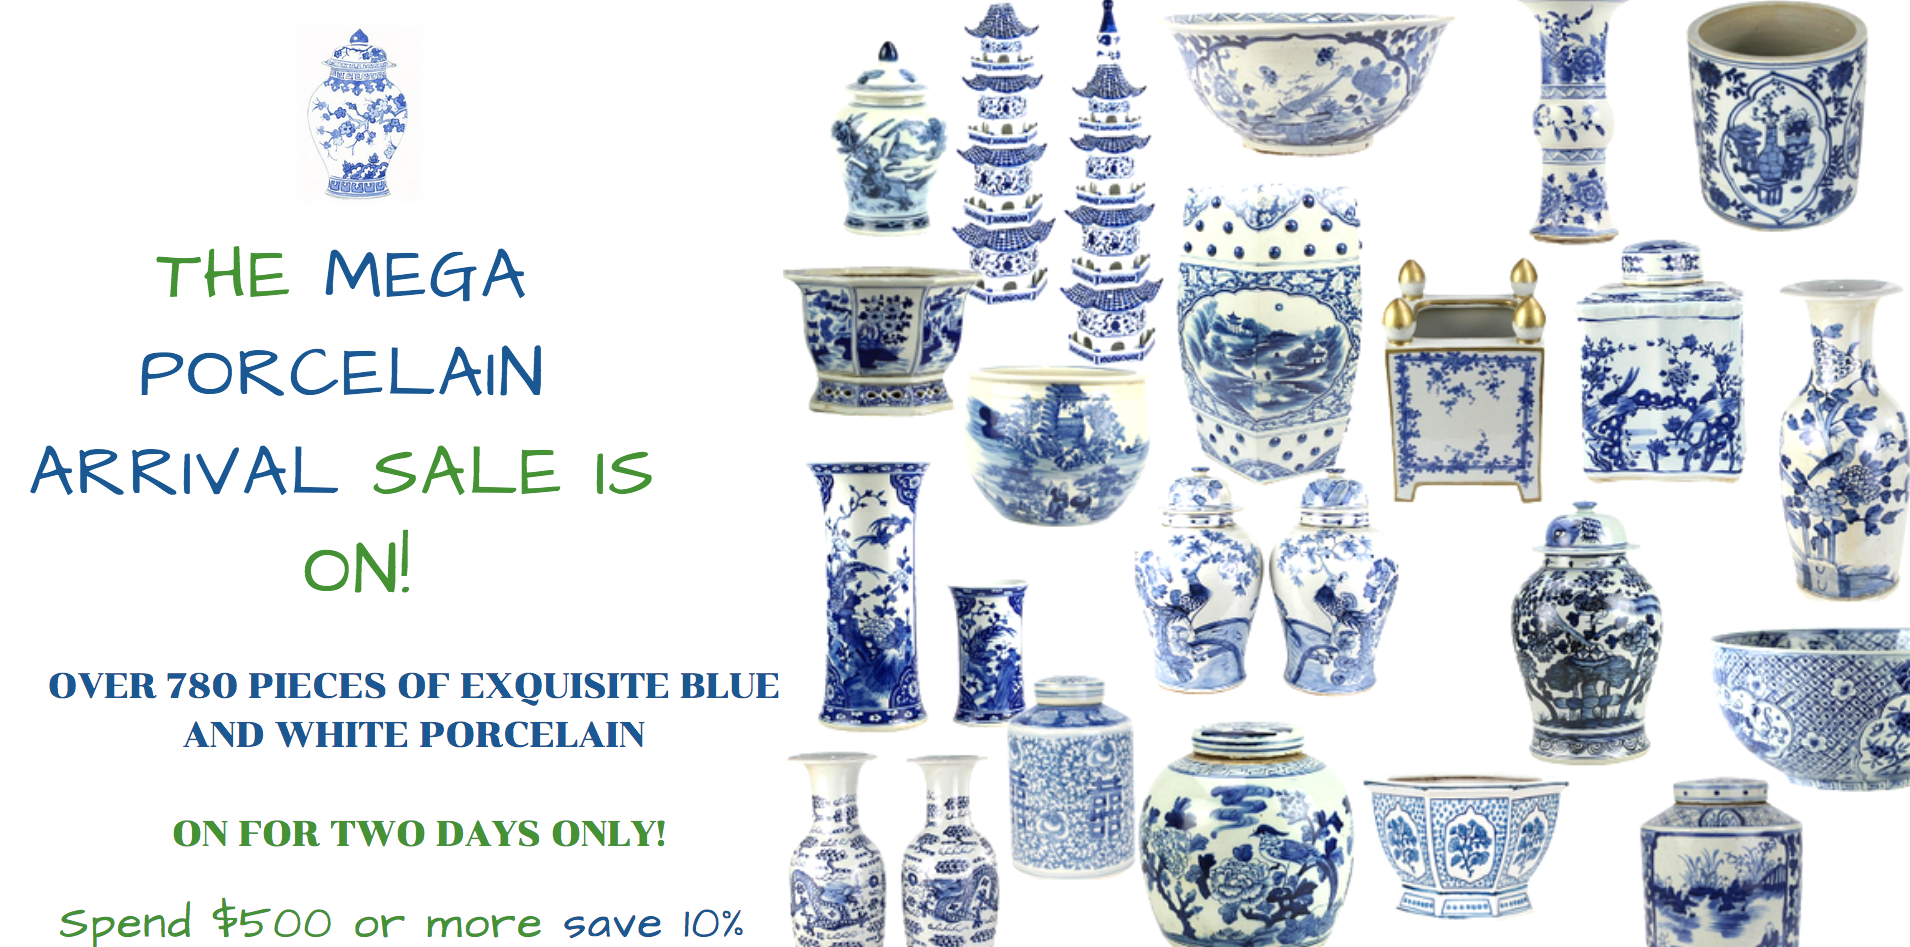 The mega January porcelain container arrival sale is officially on and a giveaway!